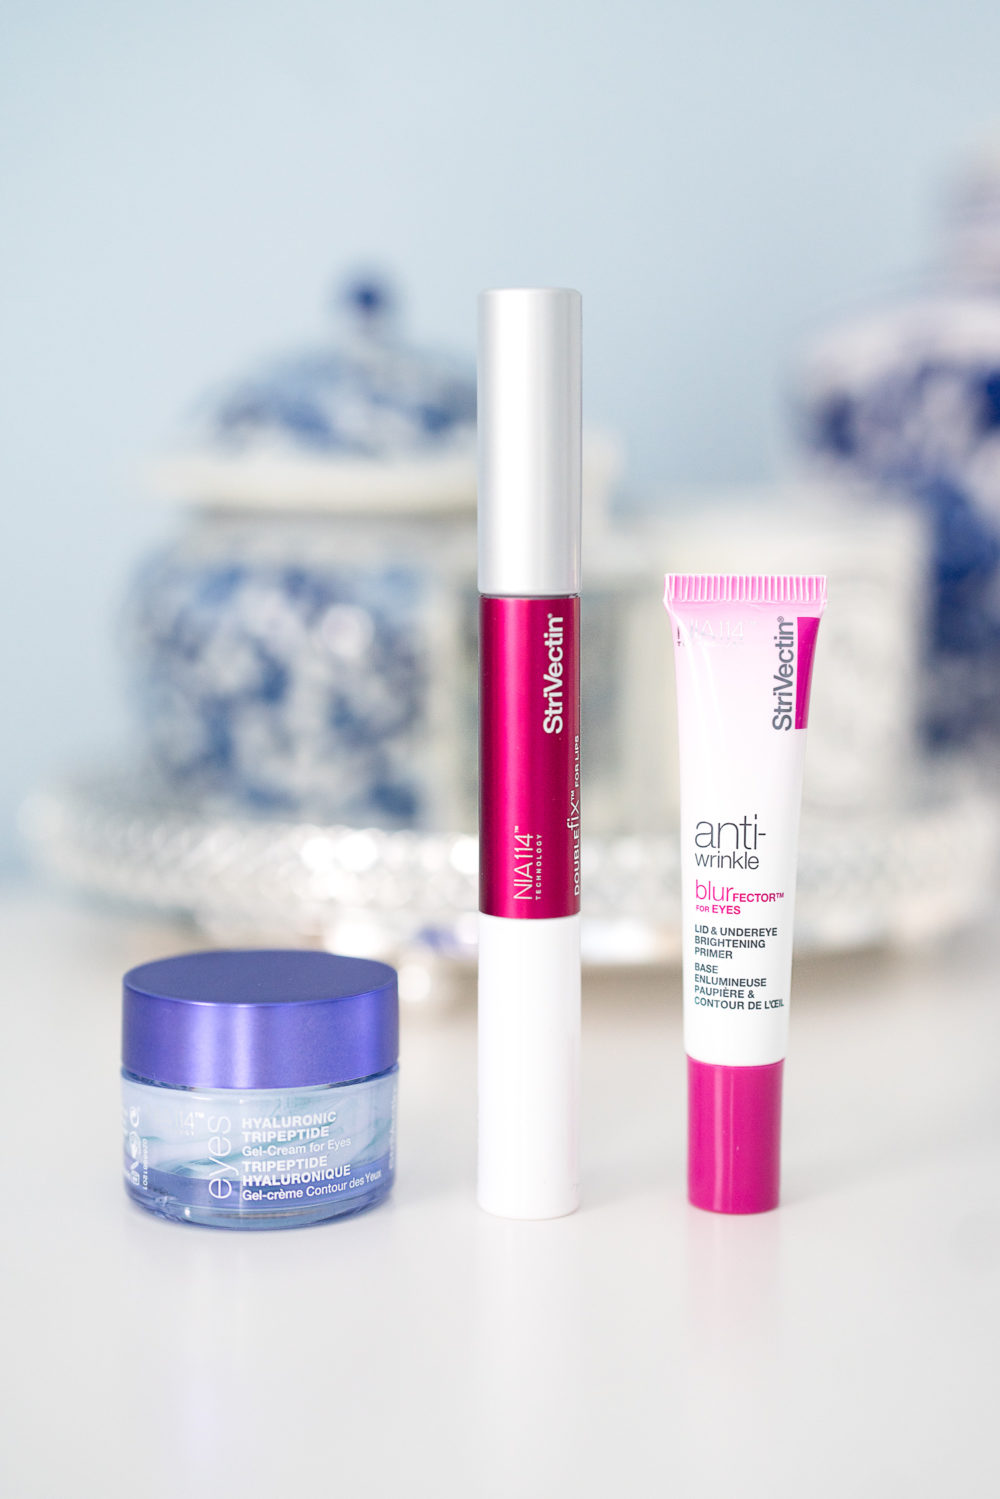 Petite Fashion Blog | Strivectin Anti-Wrinkle Cream Review